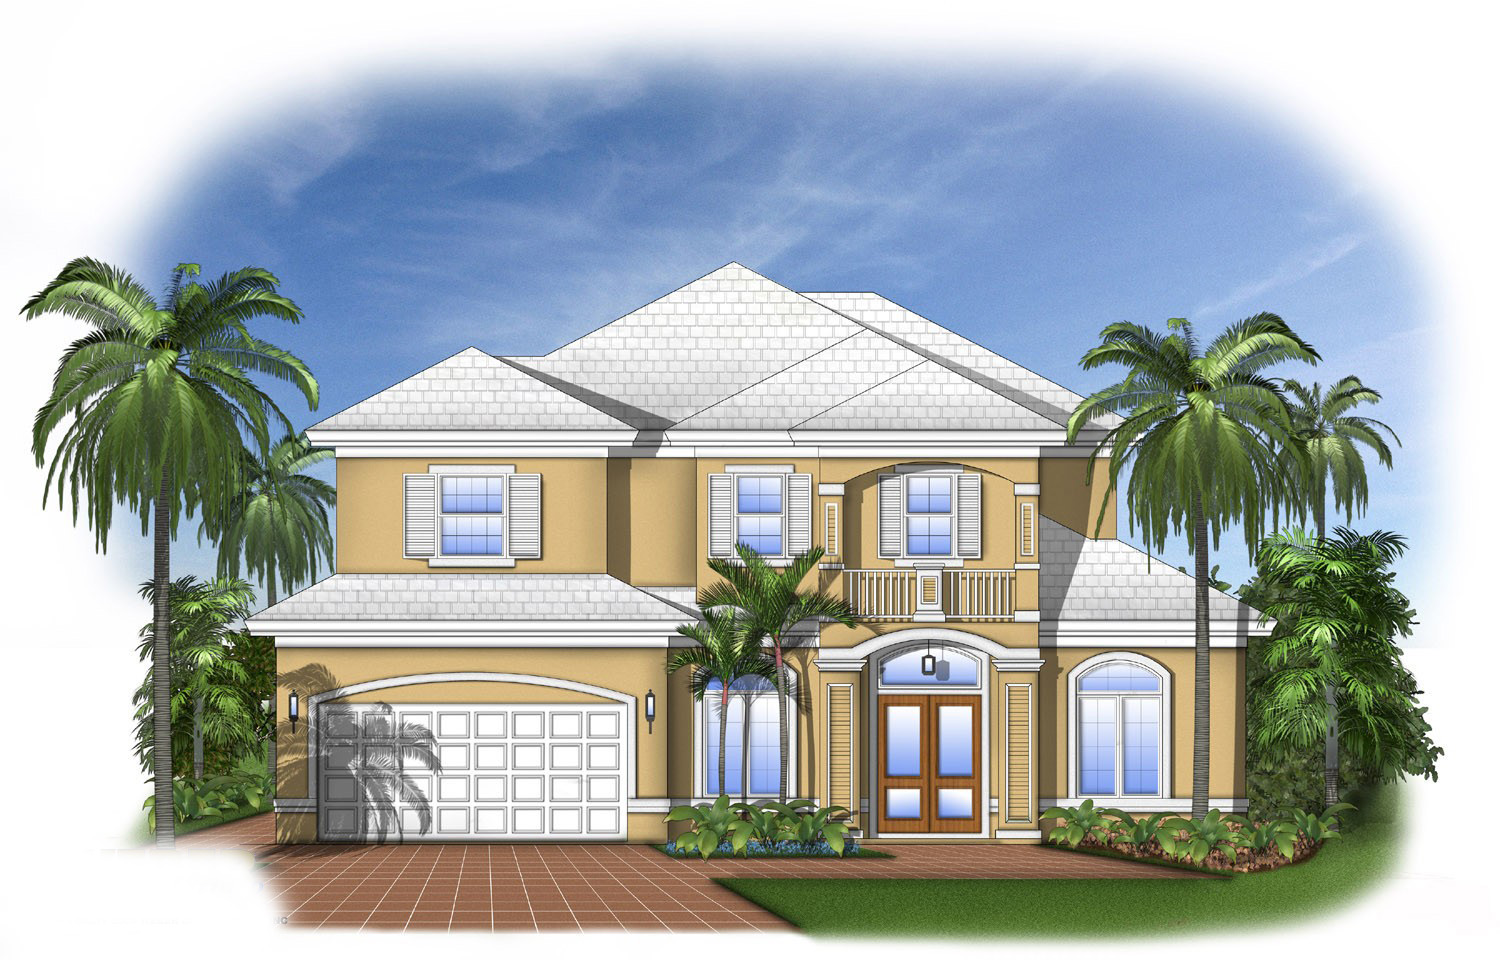 Architecture Design House Plans Florida House Plan With Open Layout 66102we